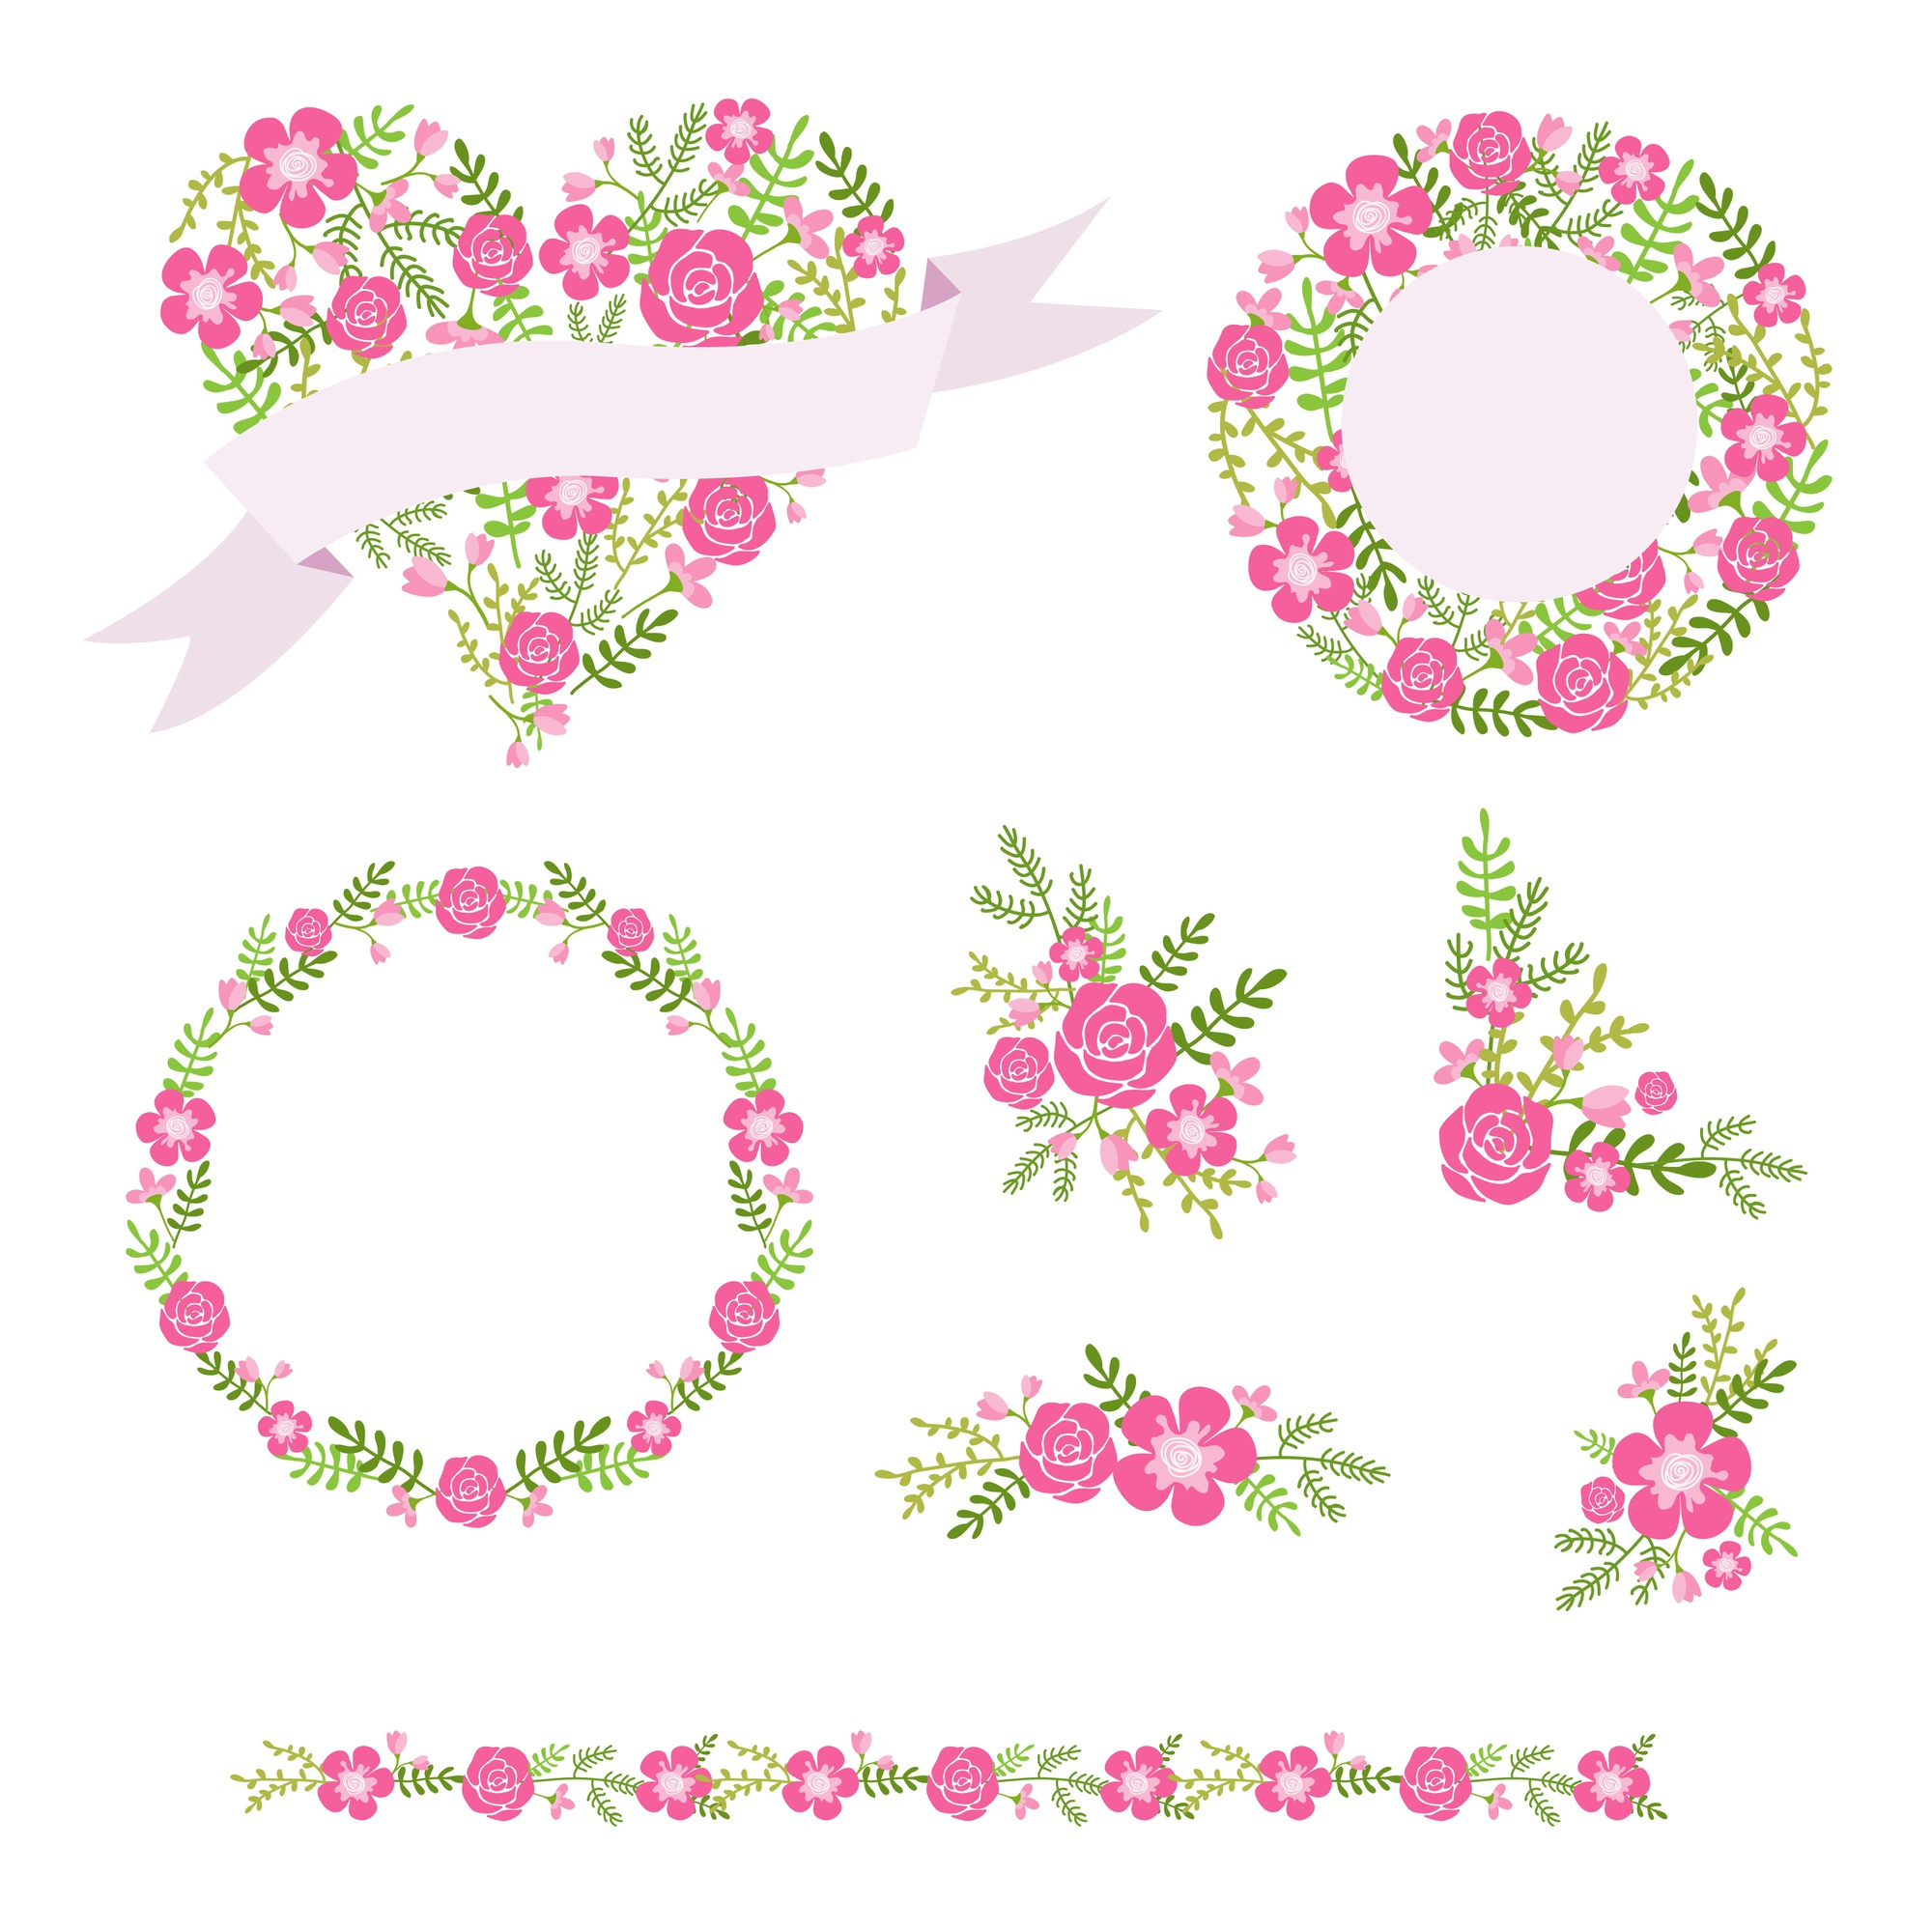 Flower wreaths and bouquets